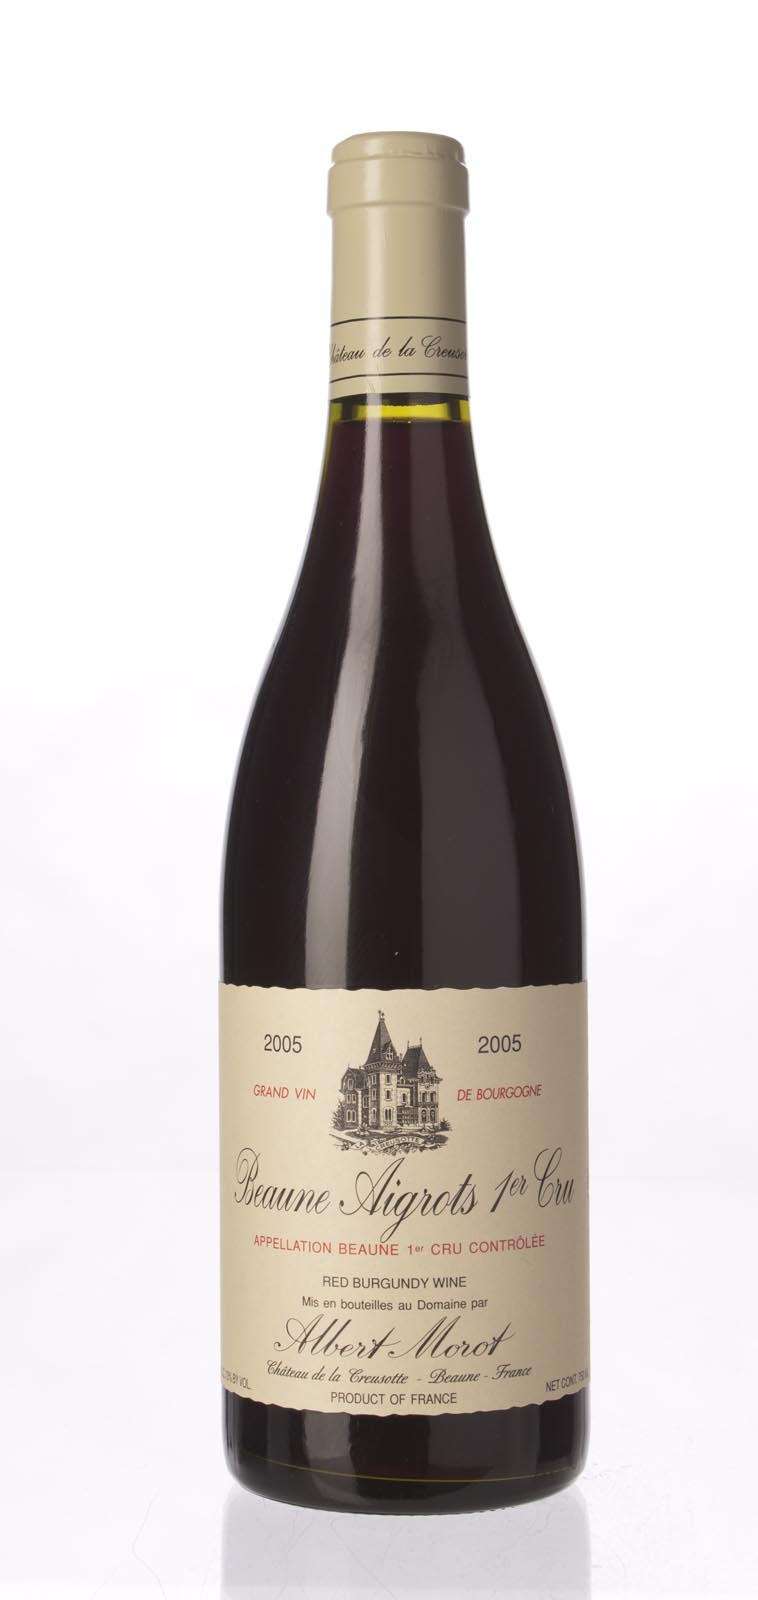 Albert Morot Beaune Aigrots 2005, 750ml () from The BPW - Merchants of rare and fine wines.